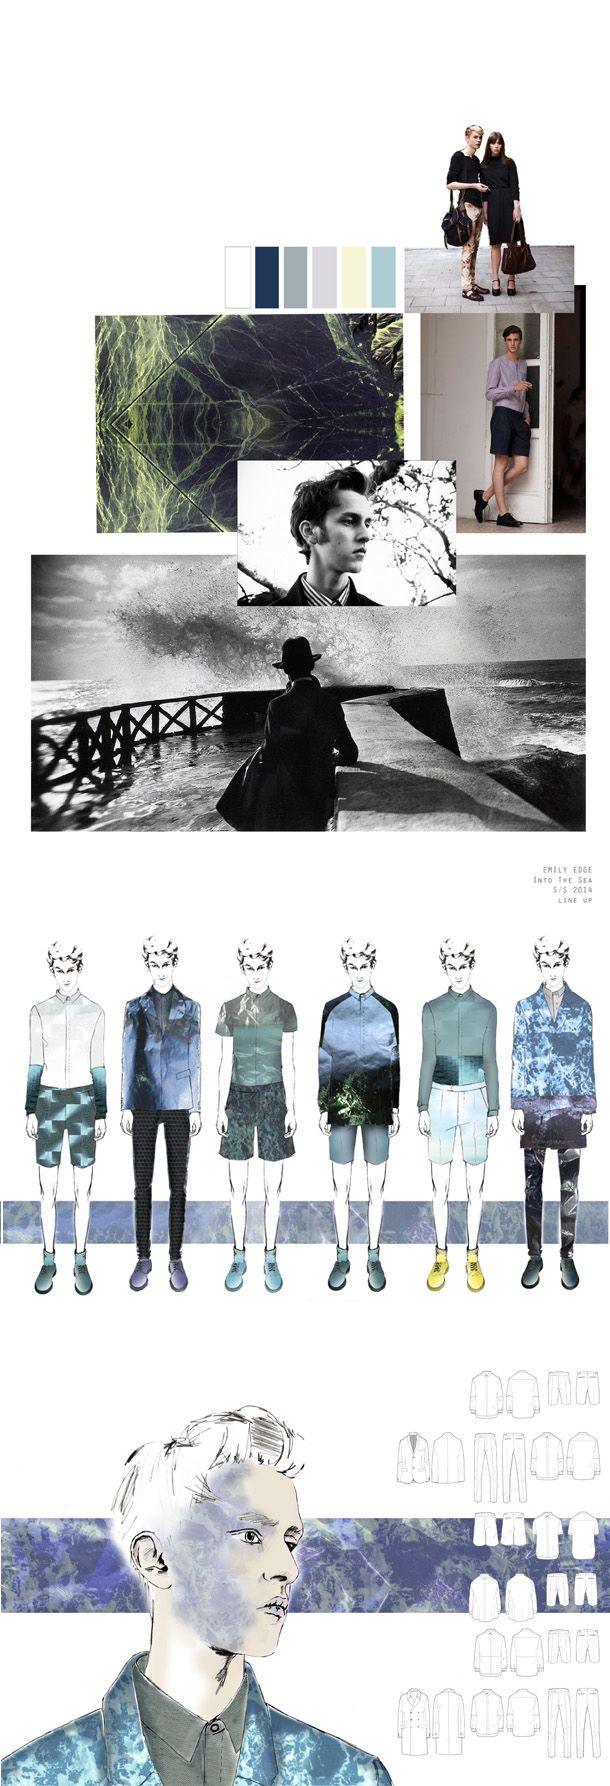 Fashion Portfolio layout - fashion design development with sea-inspired prints - fashion mood board; fashion sketchbook; lineup; fashion illustration // Emily Edge